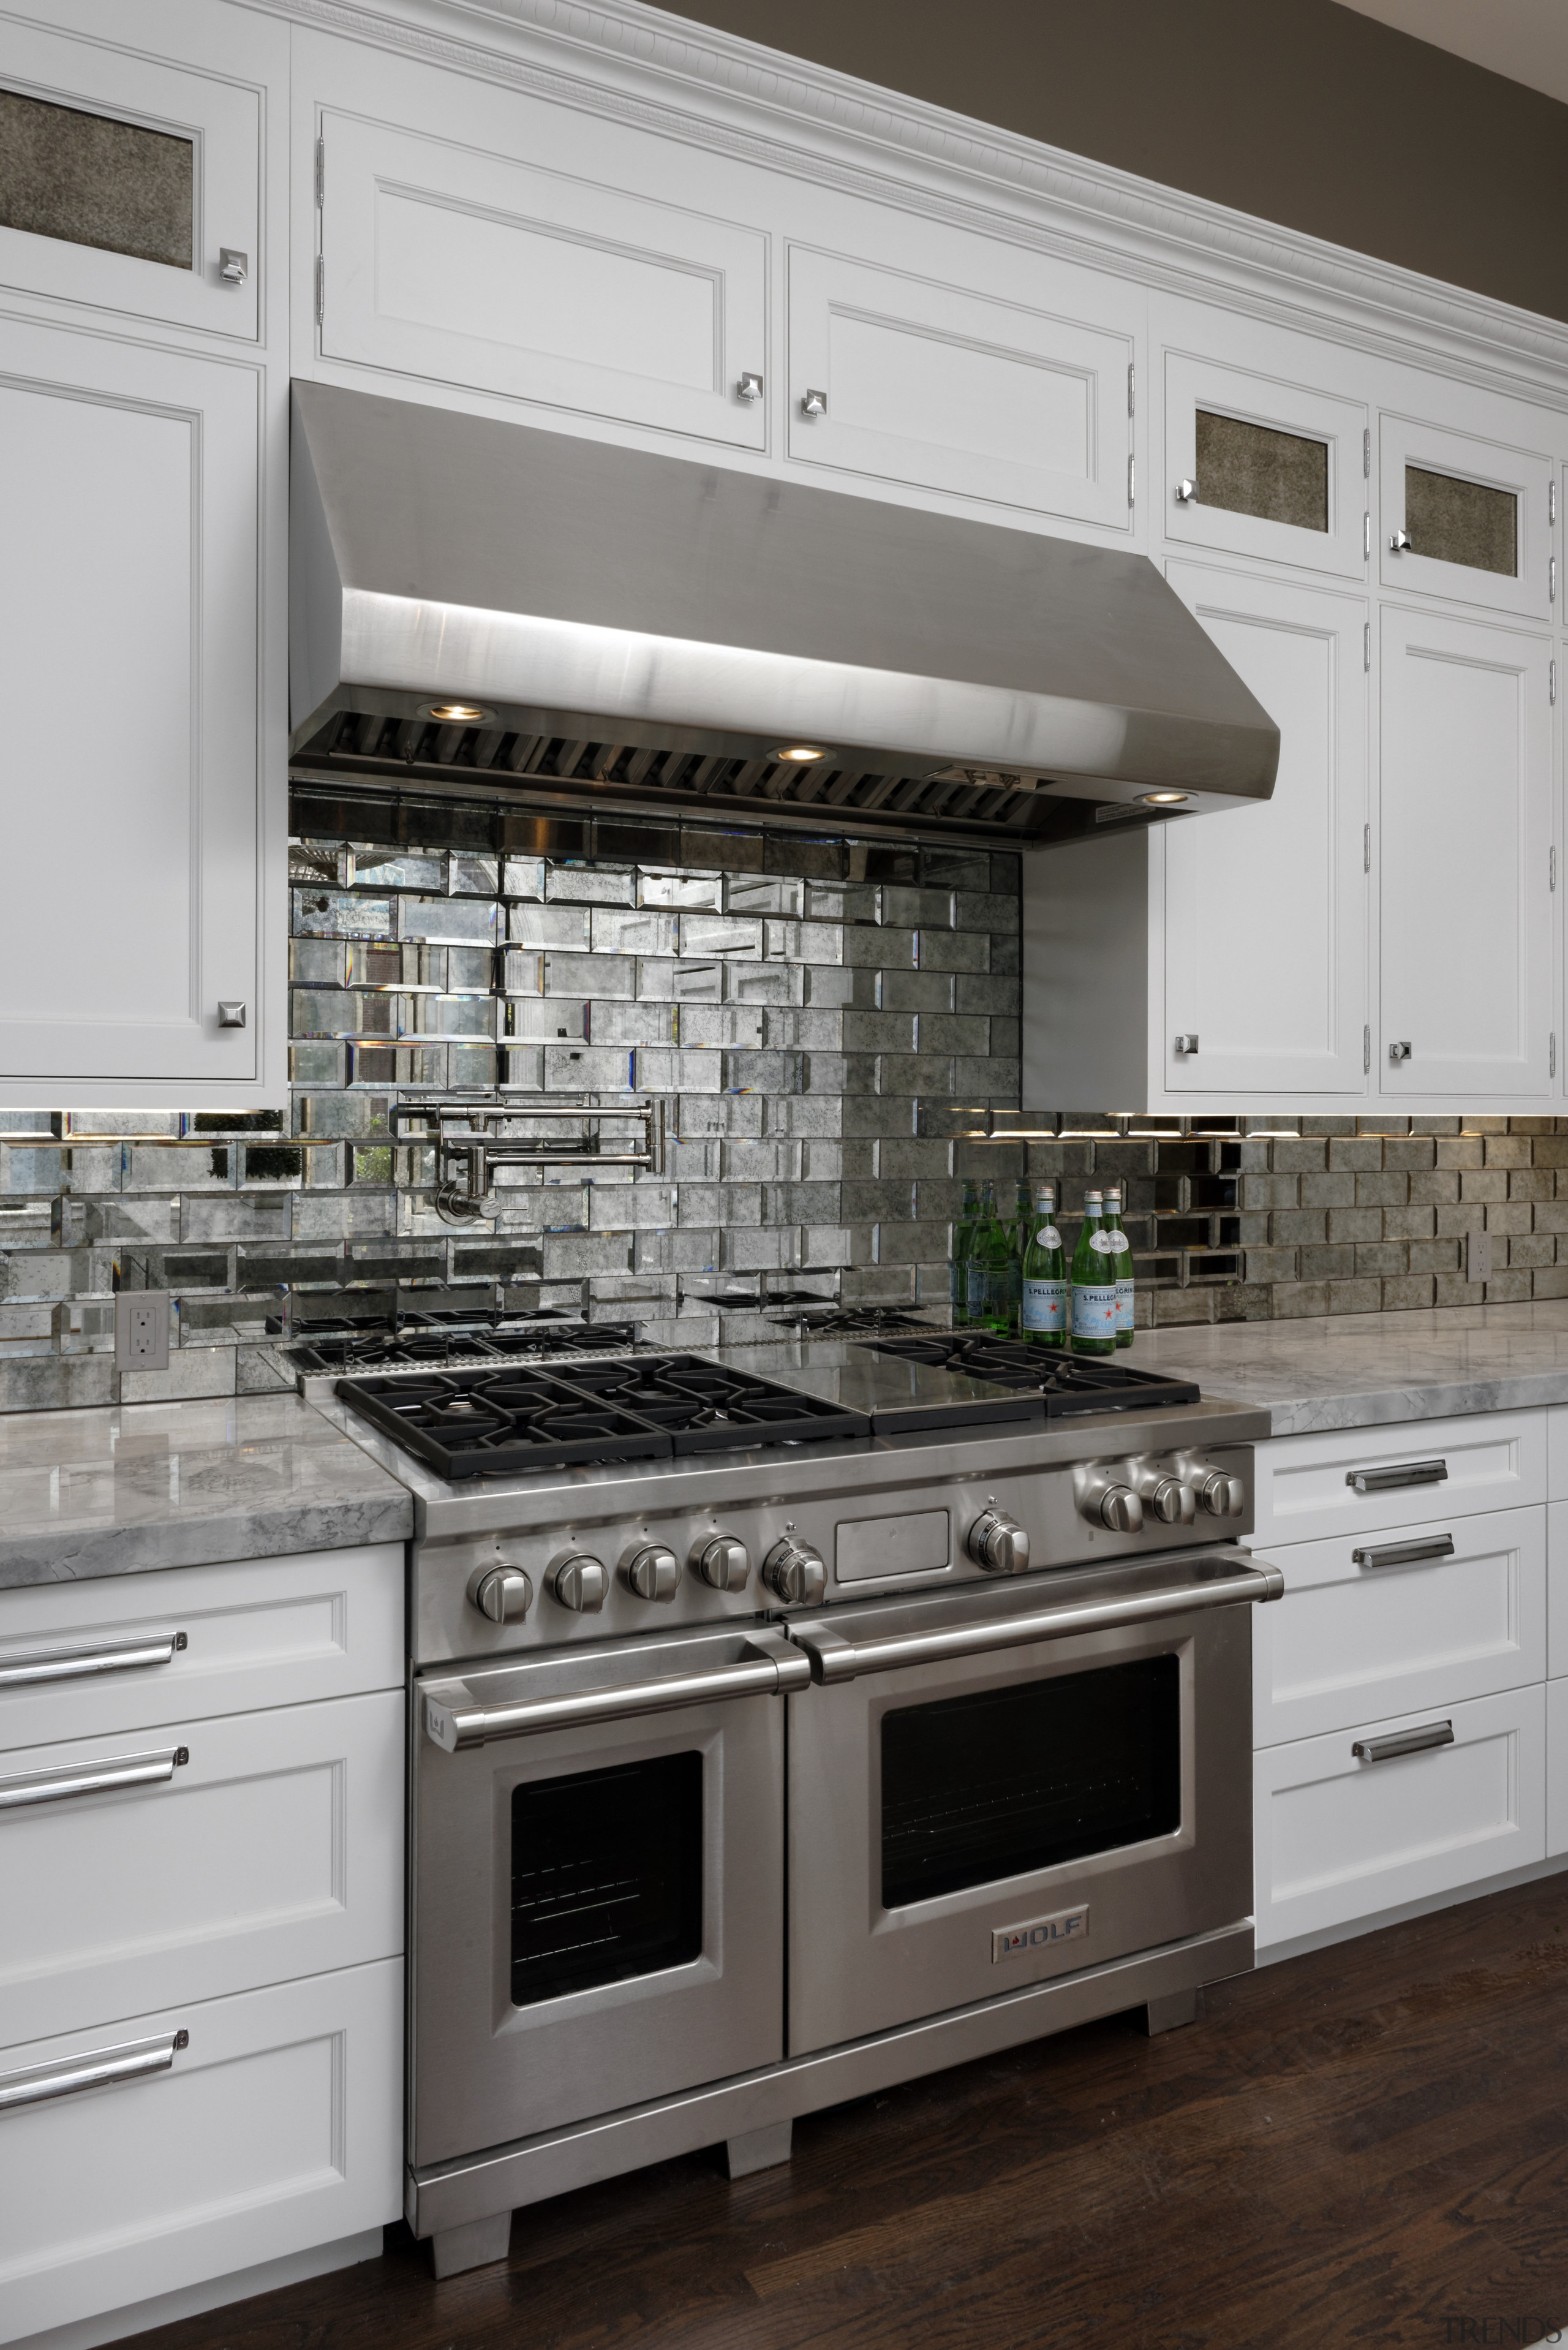 Antiqued bevelled mirror tiles are a feature of cabinetry, countertop, cuisine classique, floor, flooring, home appliance, kitchen, kitchen appliance, kitchen stove, major appliance, room, gray, black